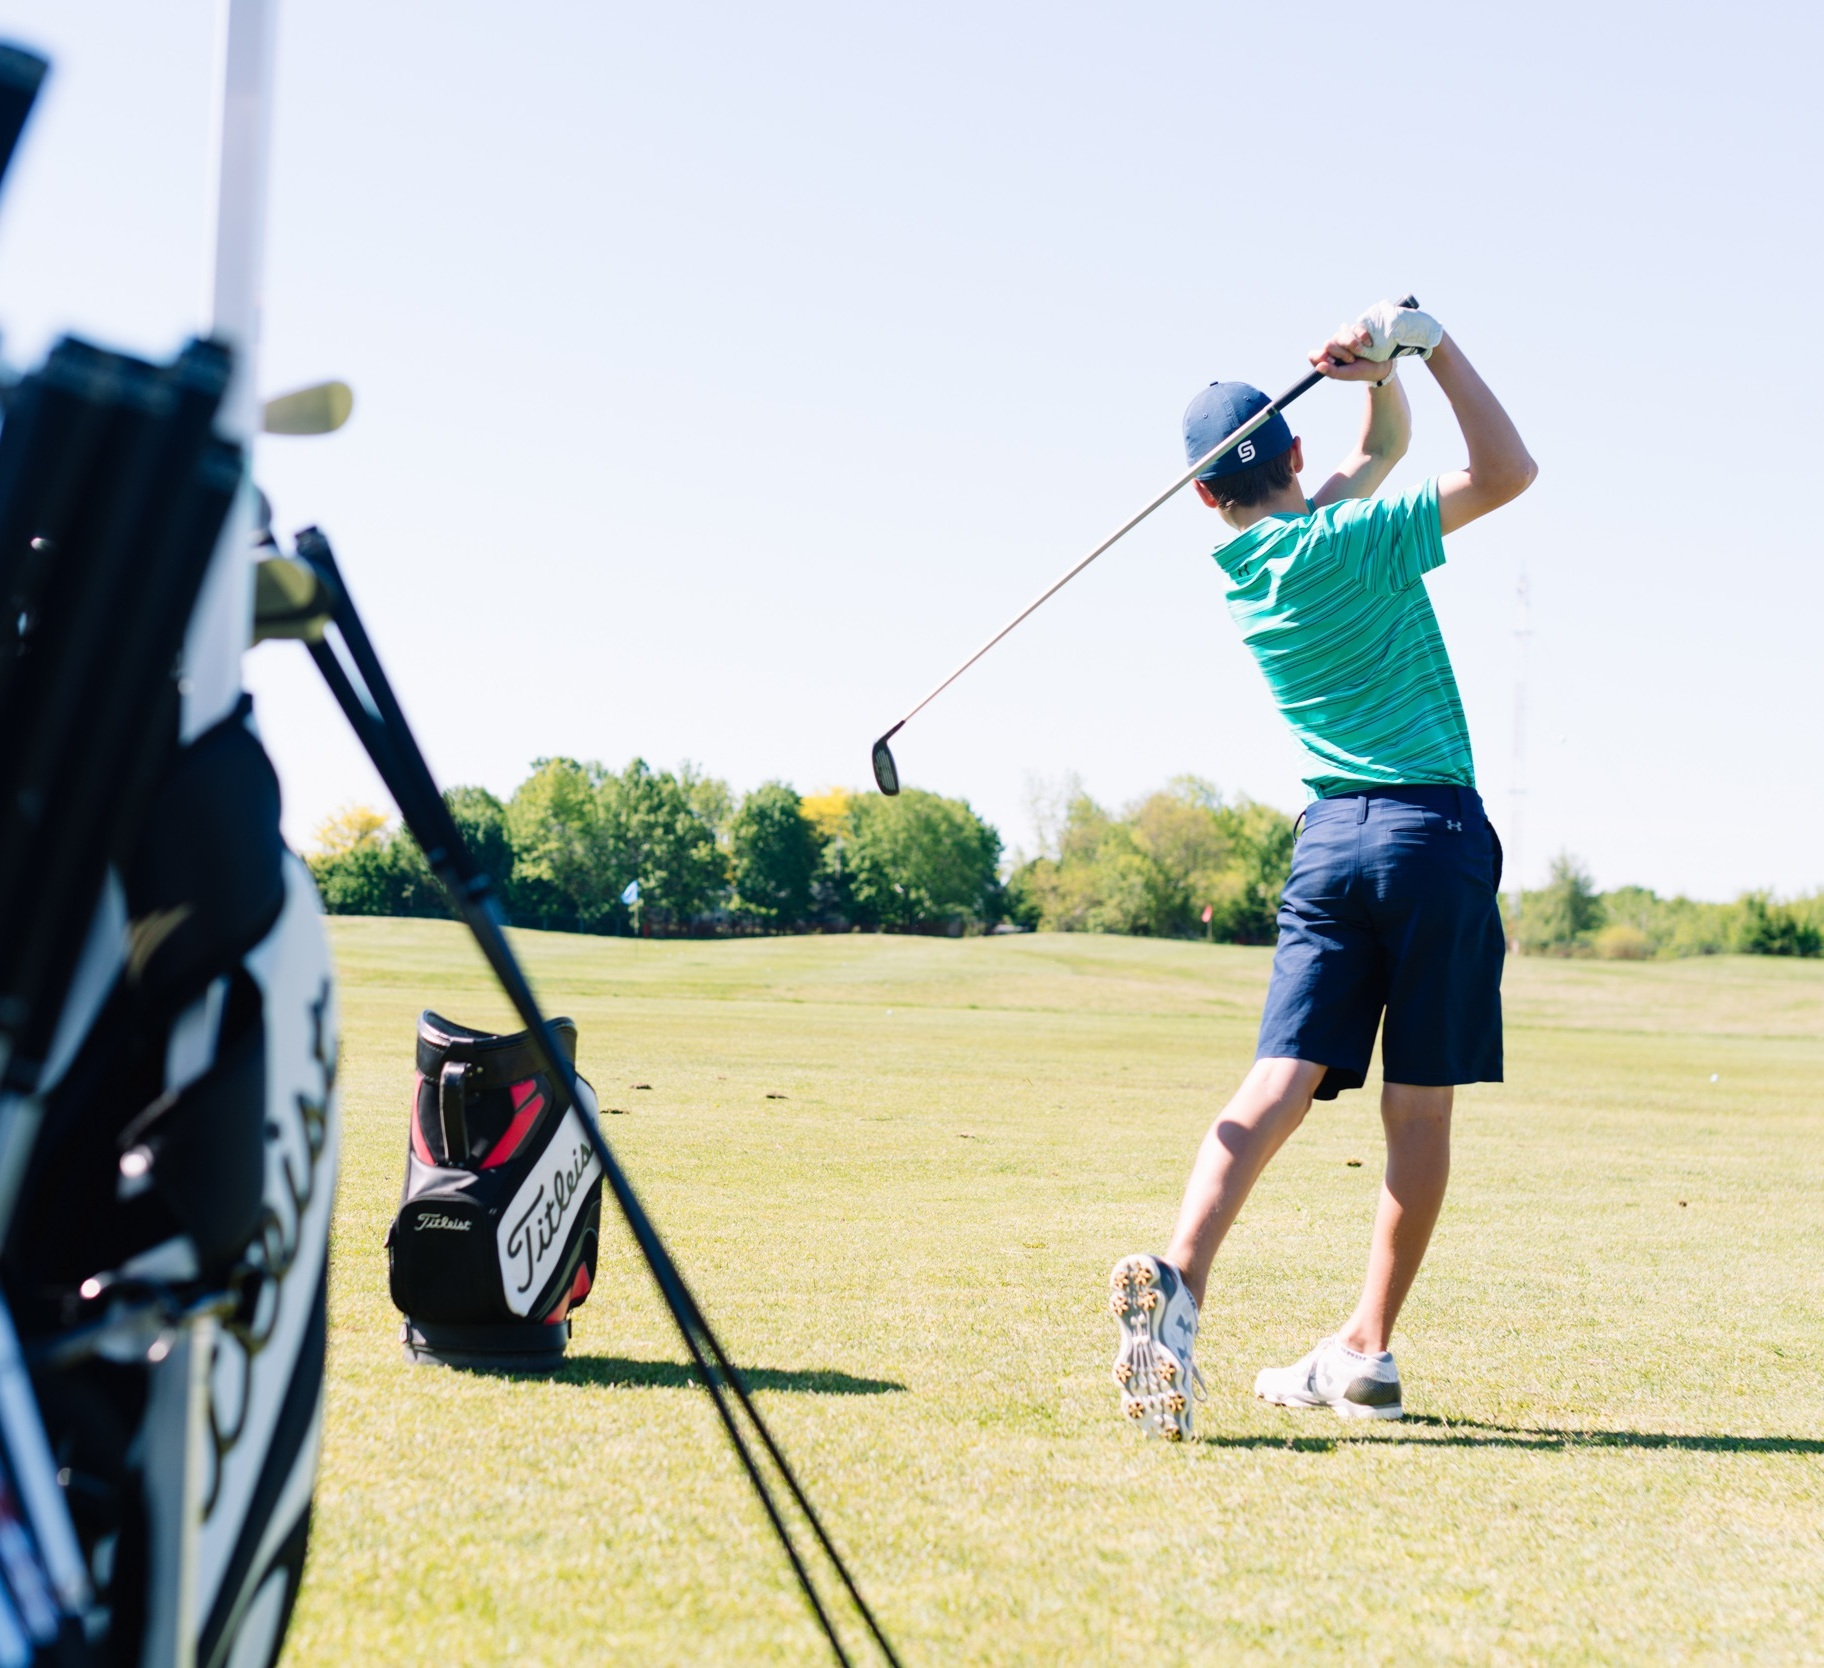 Private & Semi Private Lessons - These lessons are perfect for golfers that want a personalized approach to improving their golf game.